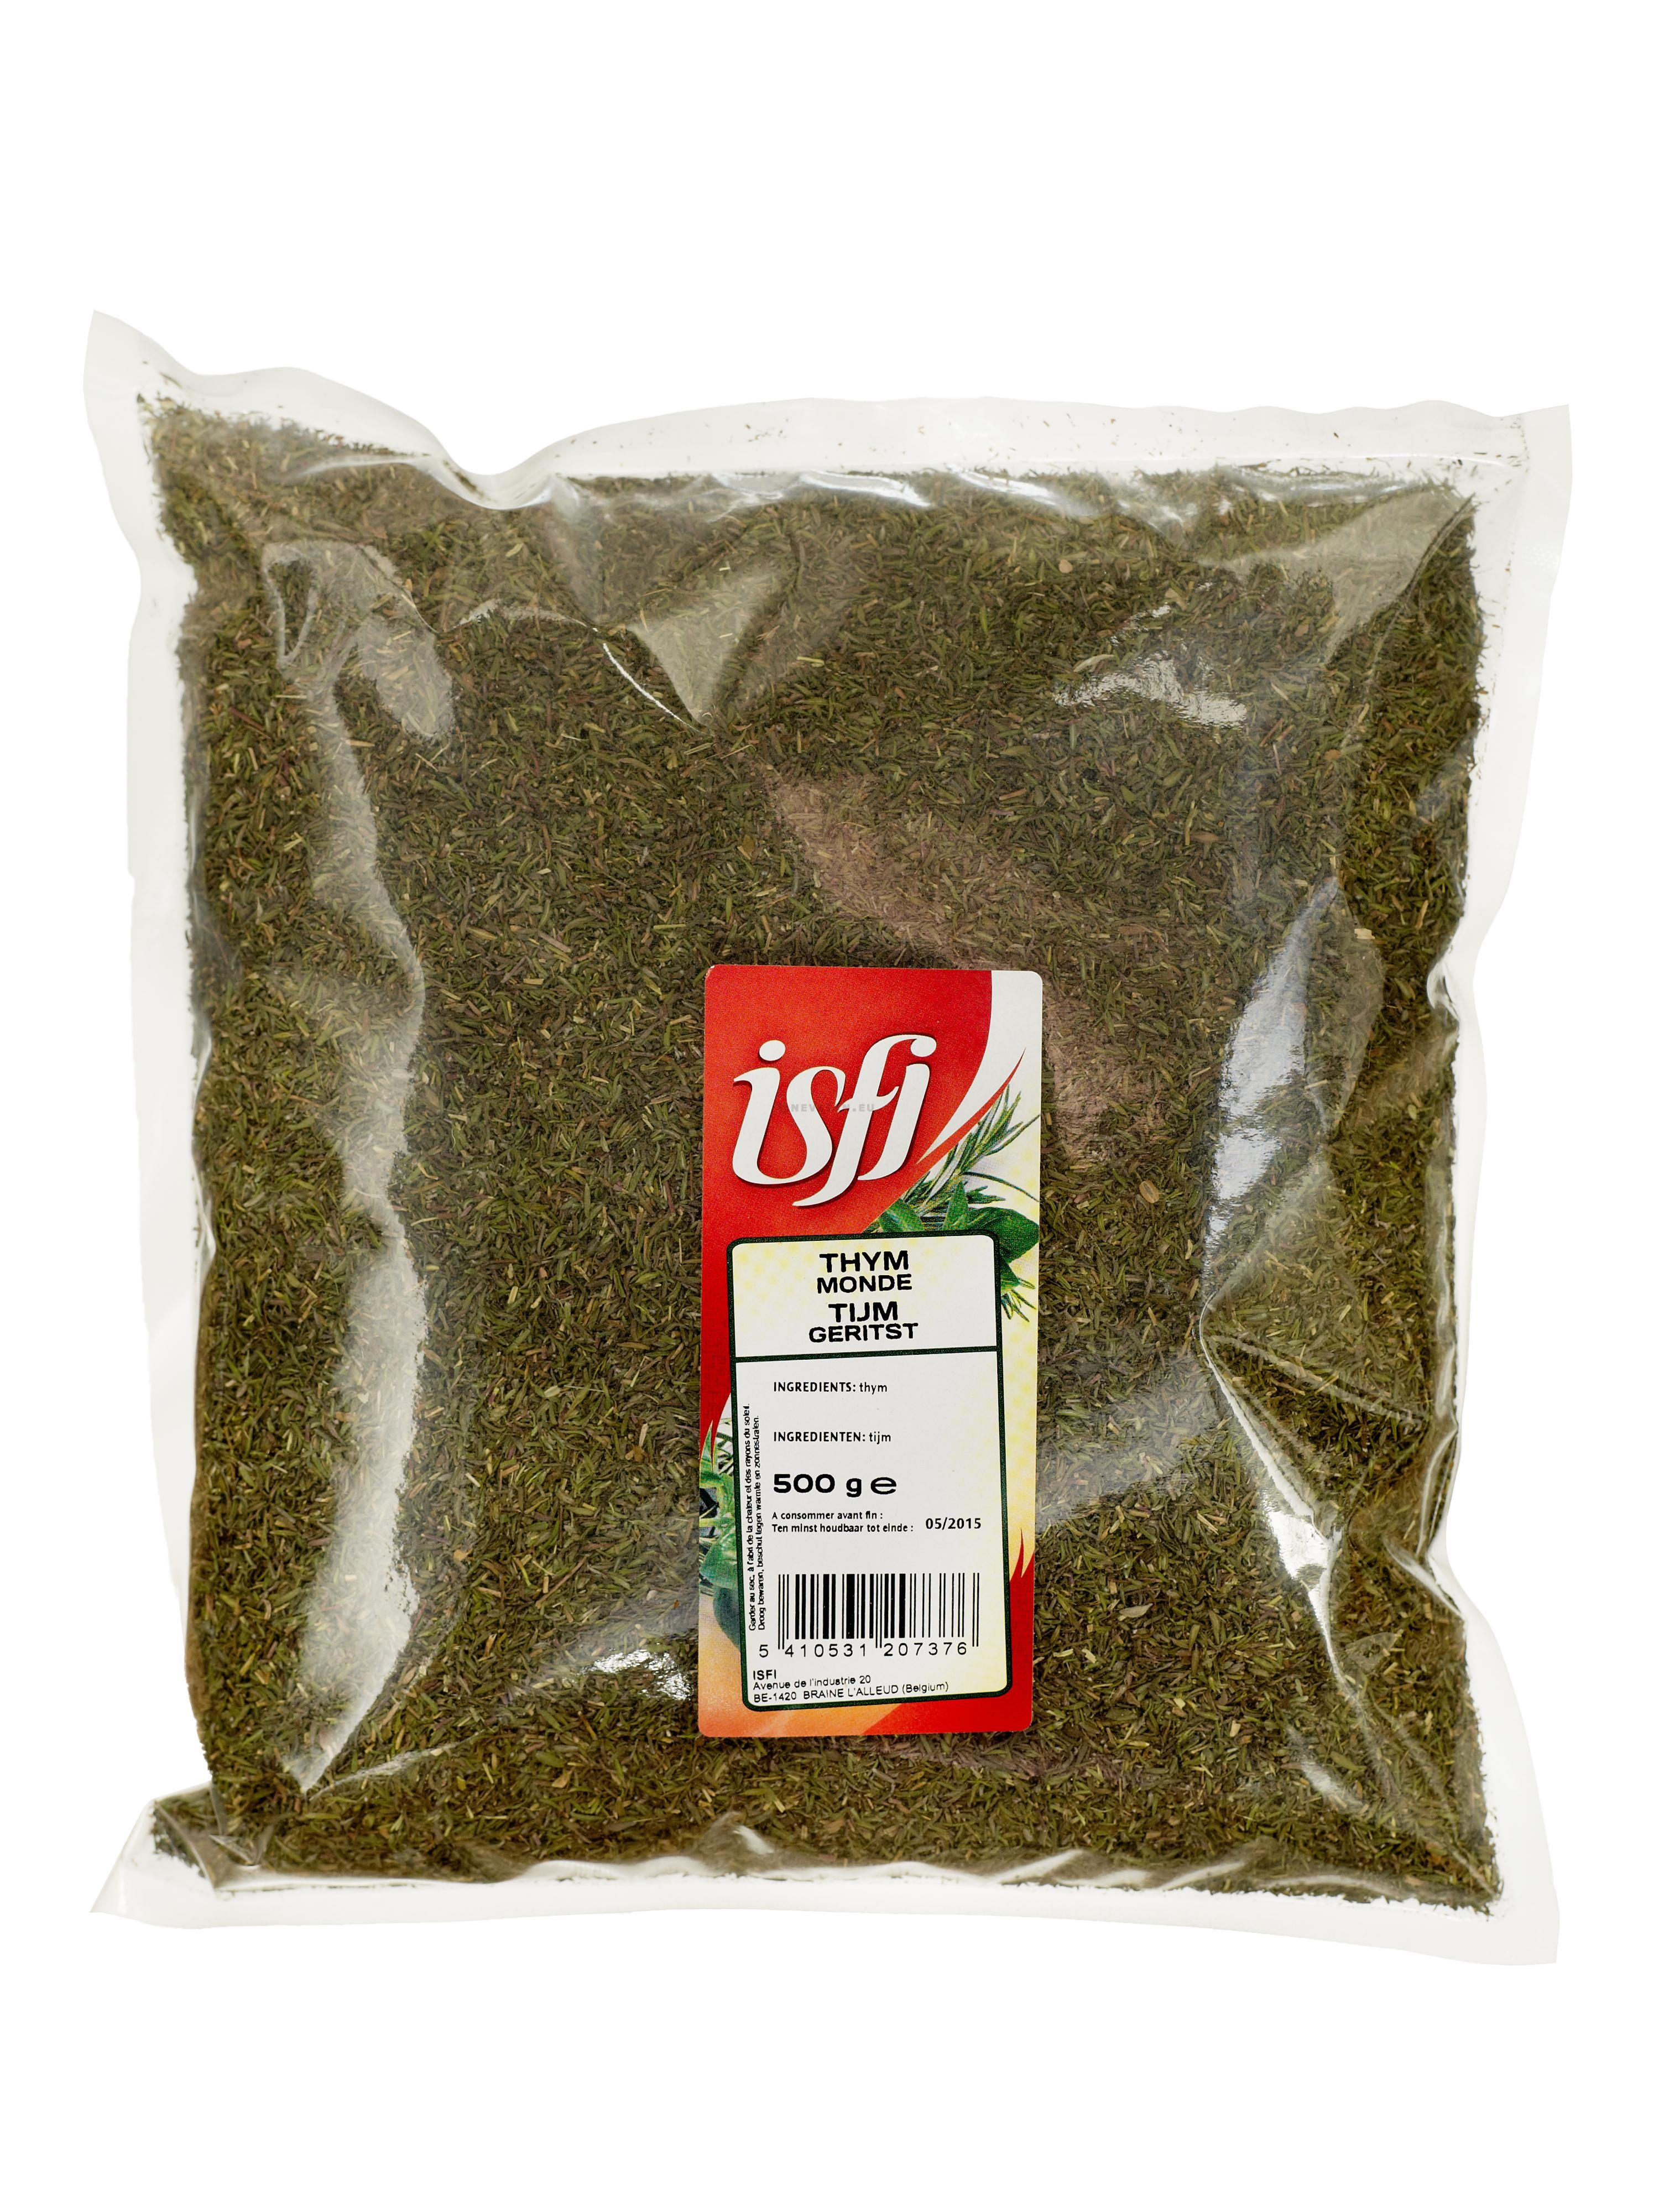 Thyme Dried Leaves 500gr Cello Bag - Isfi Spices